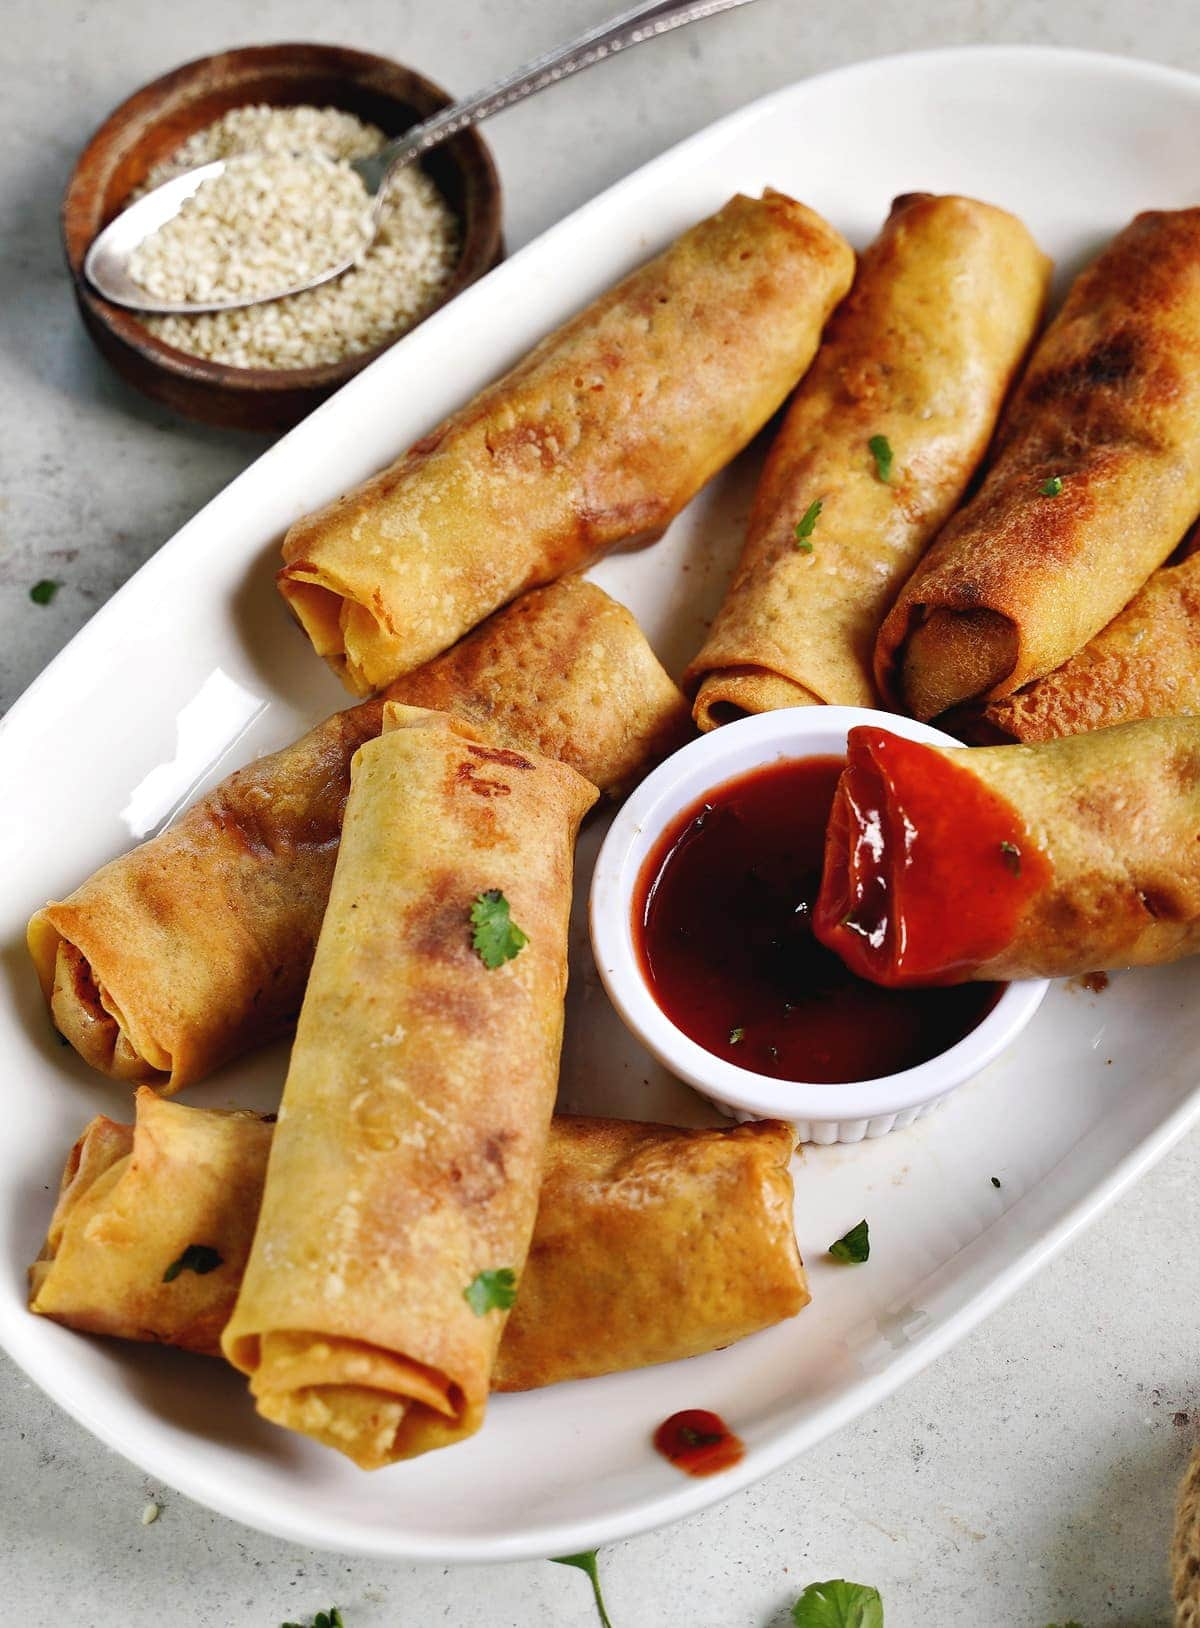 gluten-free spring roll dipped in red sauce on white plate